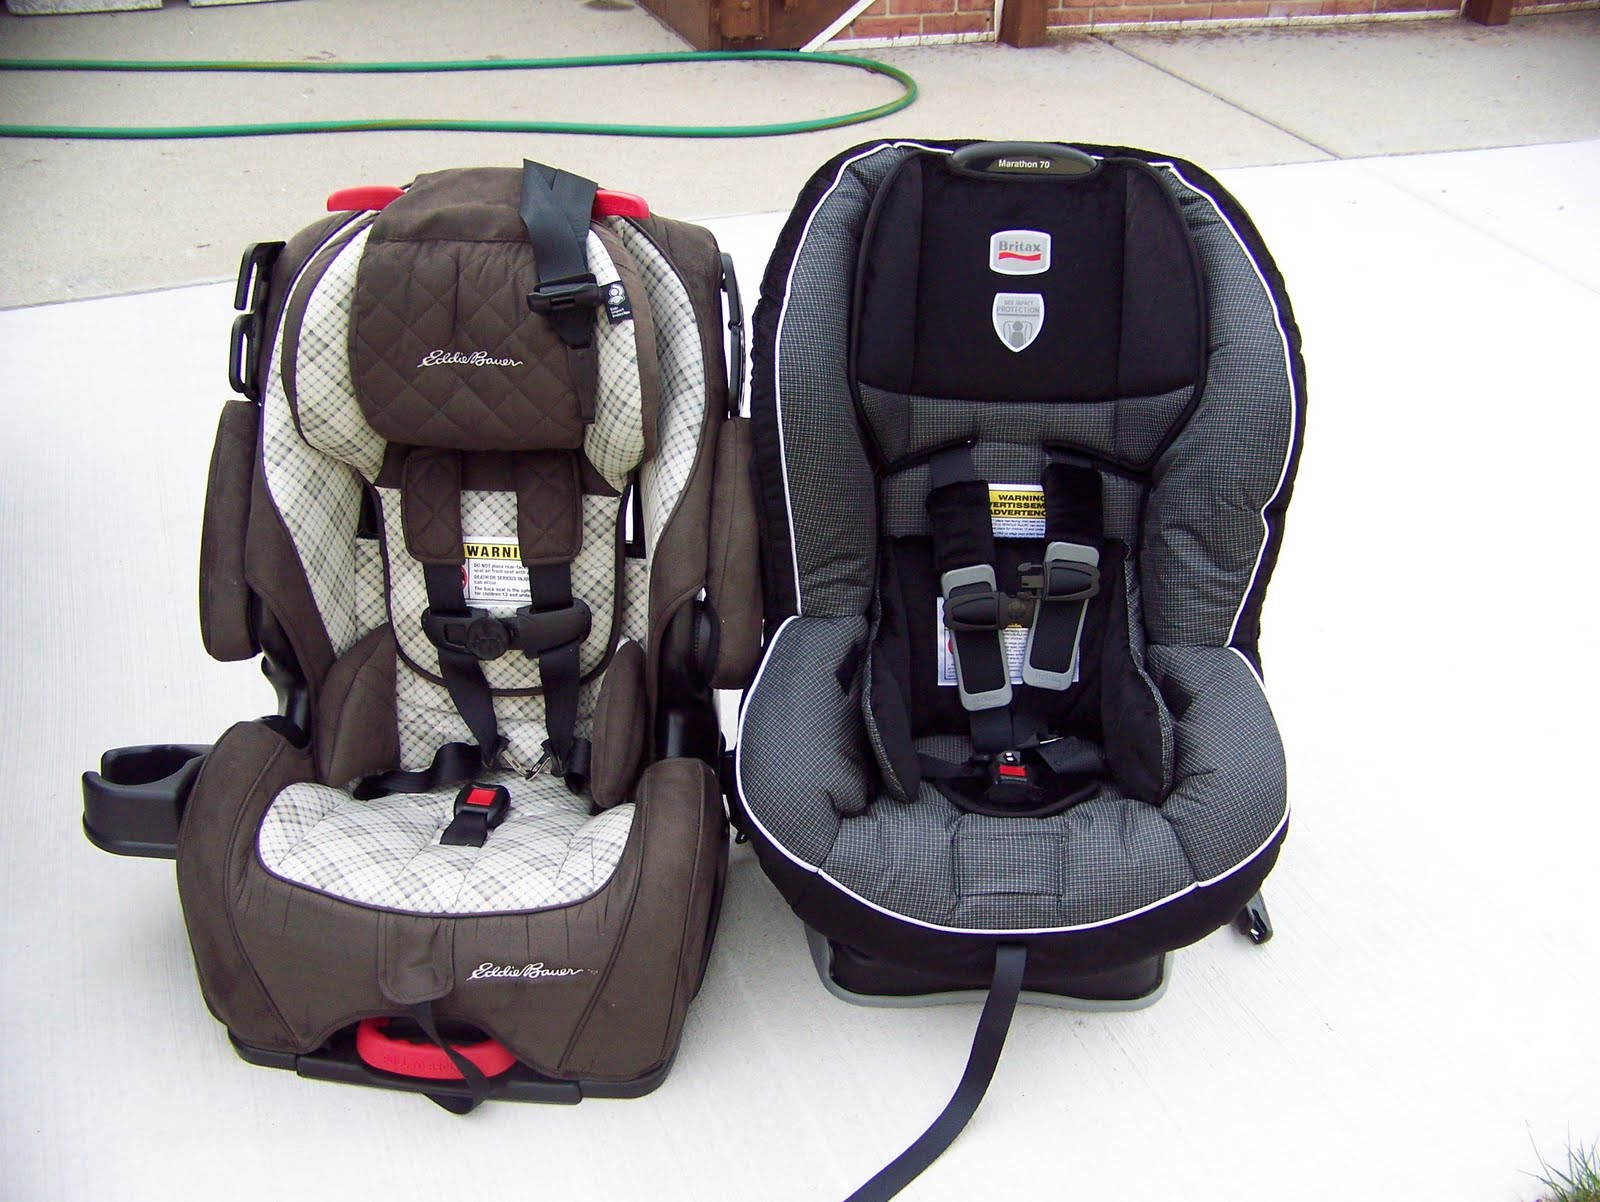 Mommys Favorite Things Britax Review